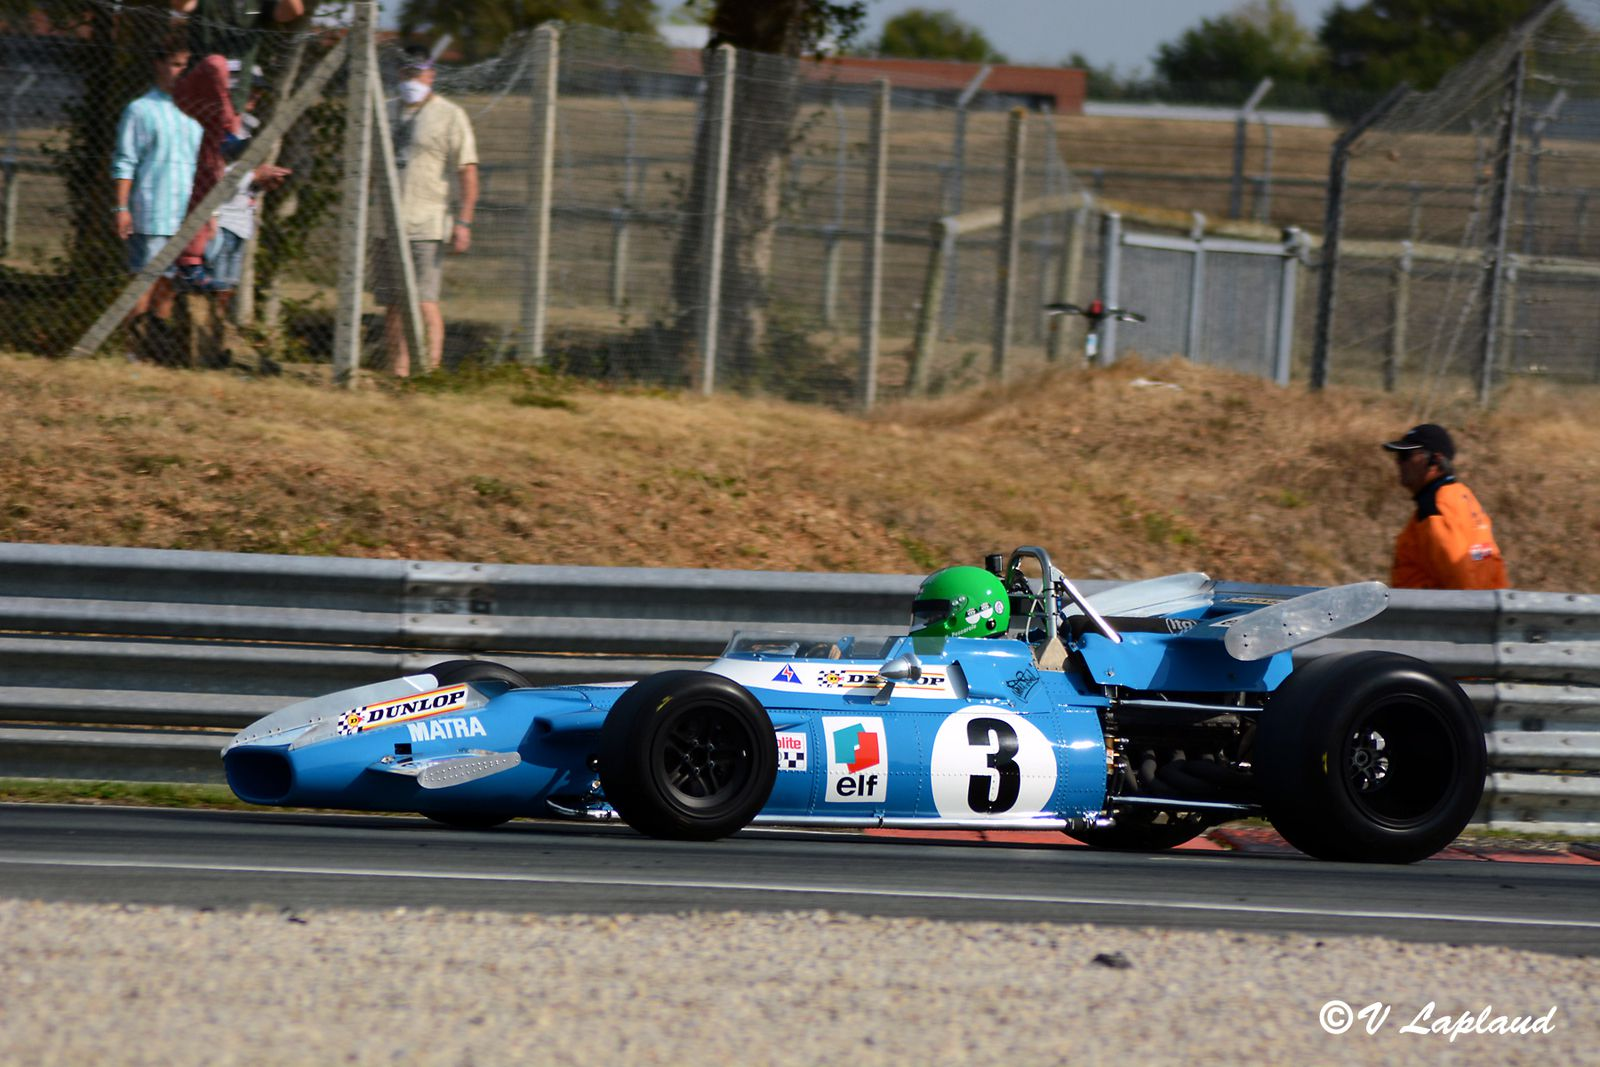 Henri Pescarolo, Matra MS 80-03, Le Vigeant 2020, 26eme Sport et Collection.